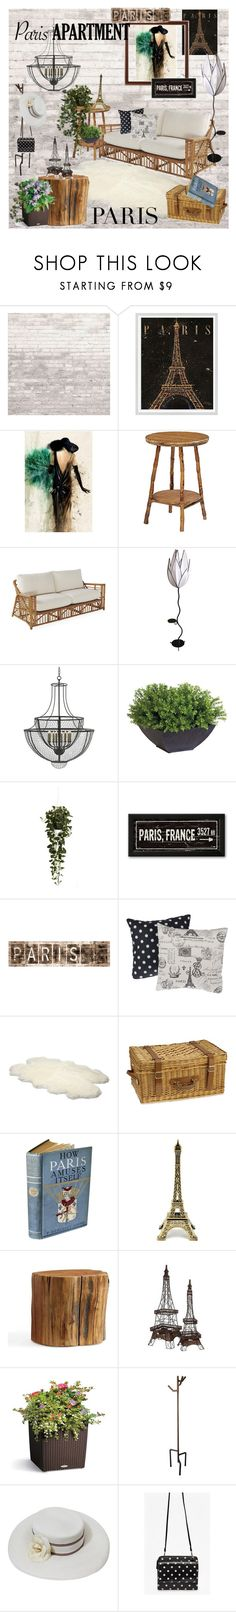 """""""Charming ....."""" by forgottenmelody ❤ liked on Polyvore featuring interior, interiors, interior design, home, home decor, interior decorating, WALL, Leftbank Art, Rovan and Ethan Allen"""